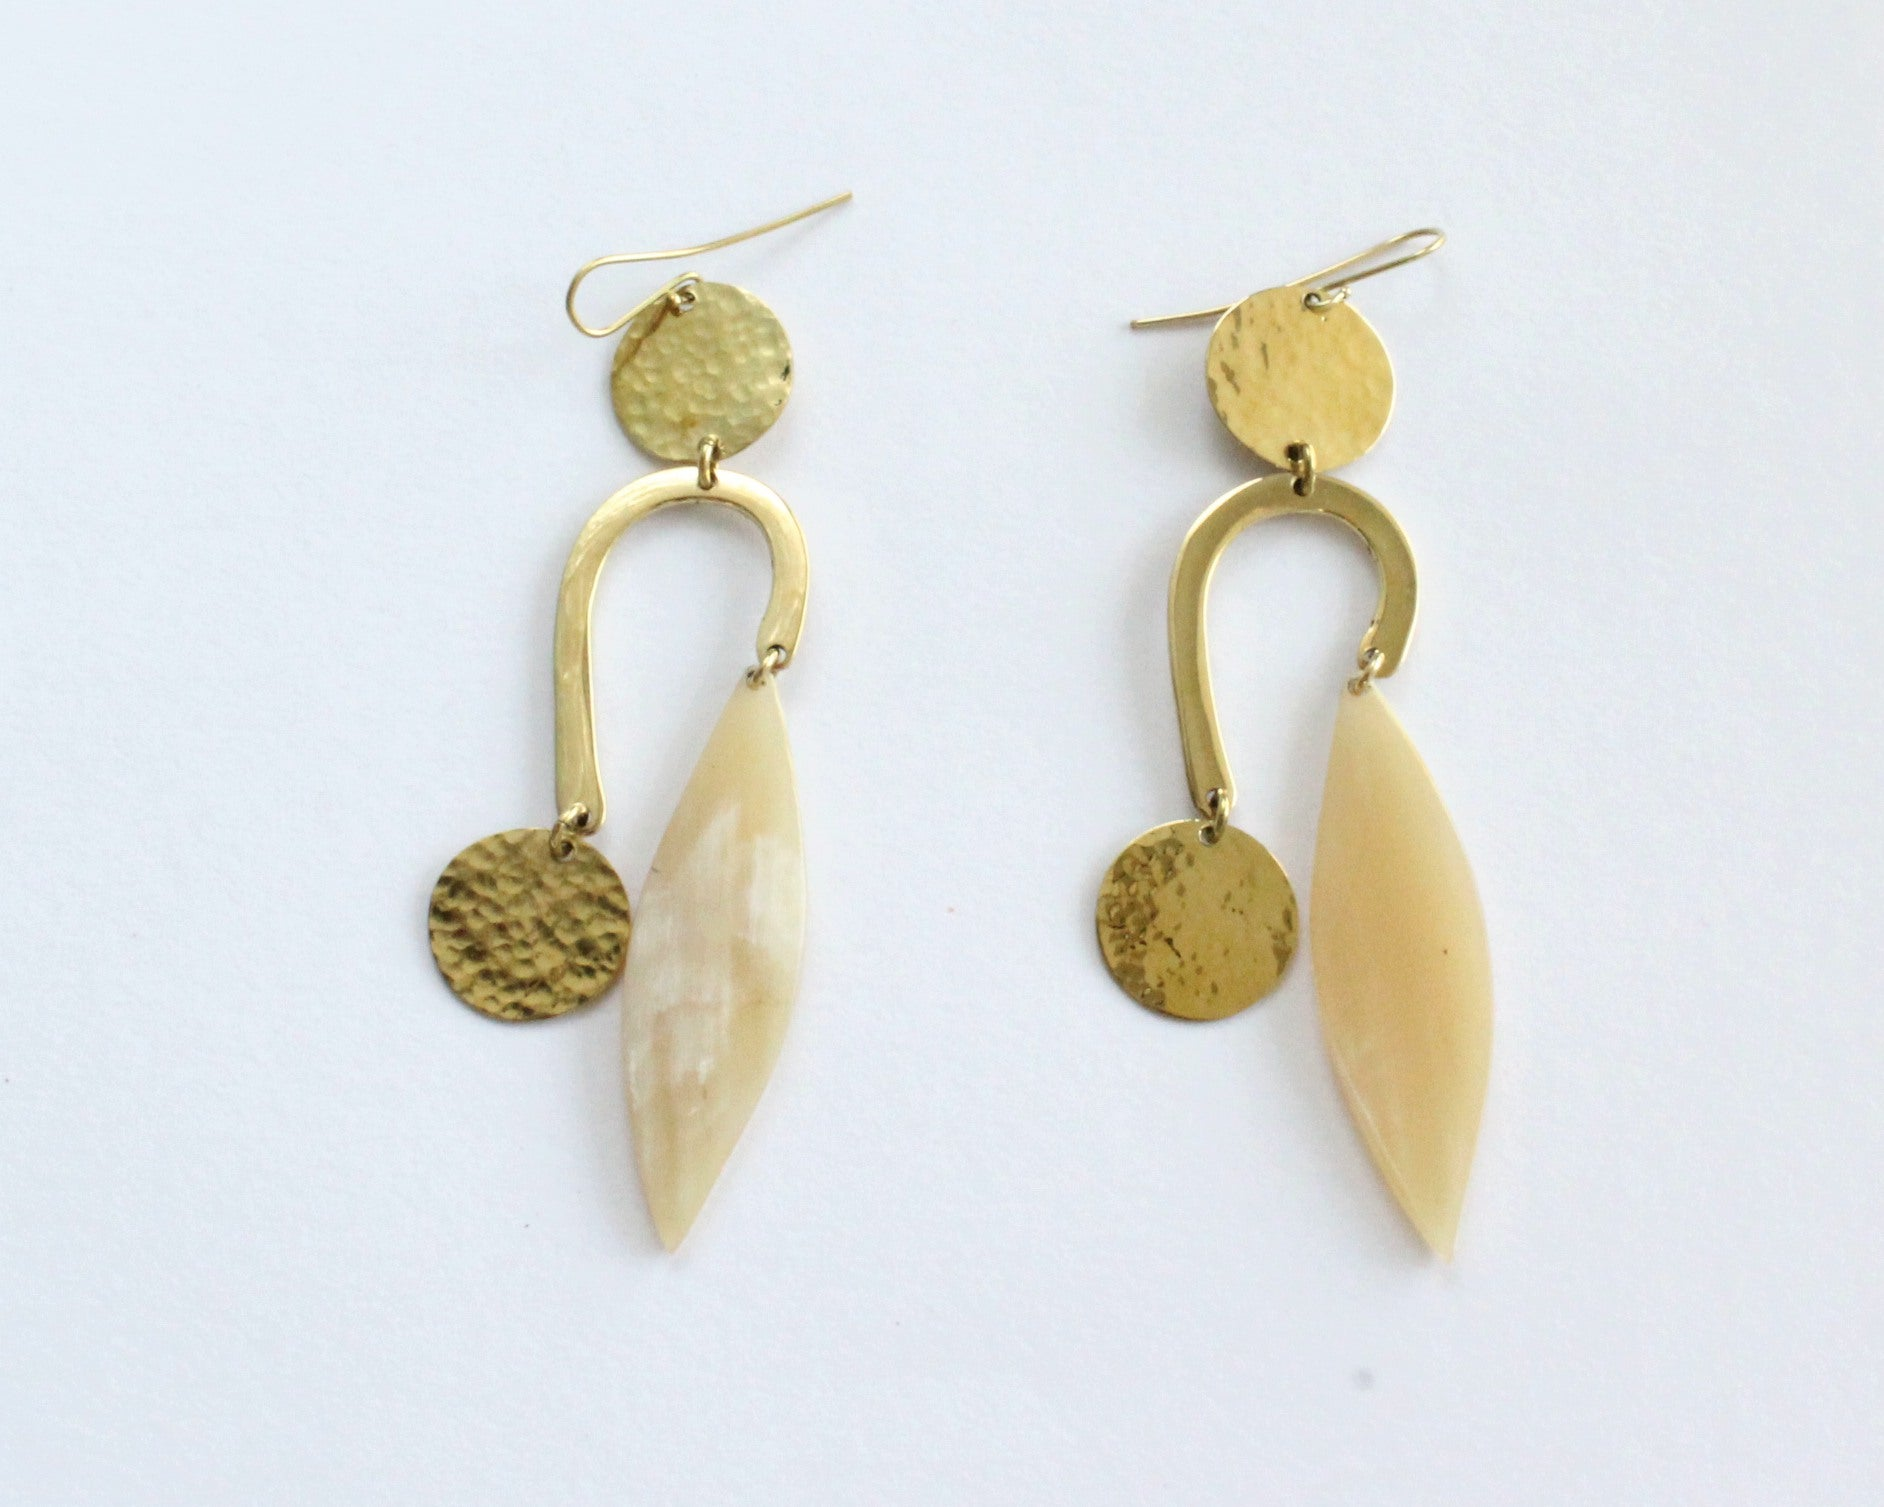 Handmade earrings, brass, recycled bone, white, upcycled, African